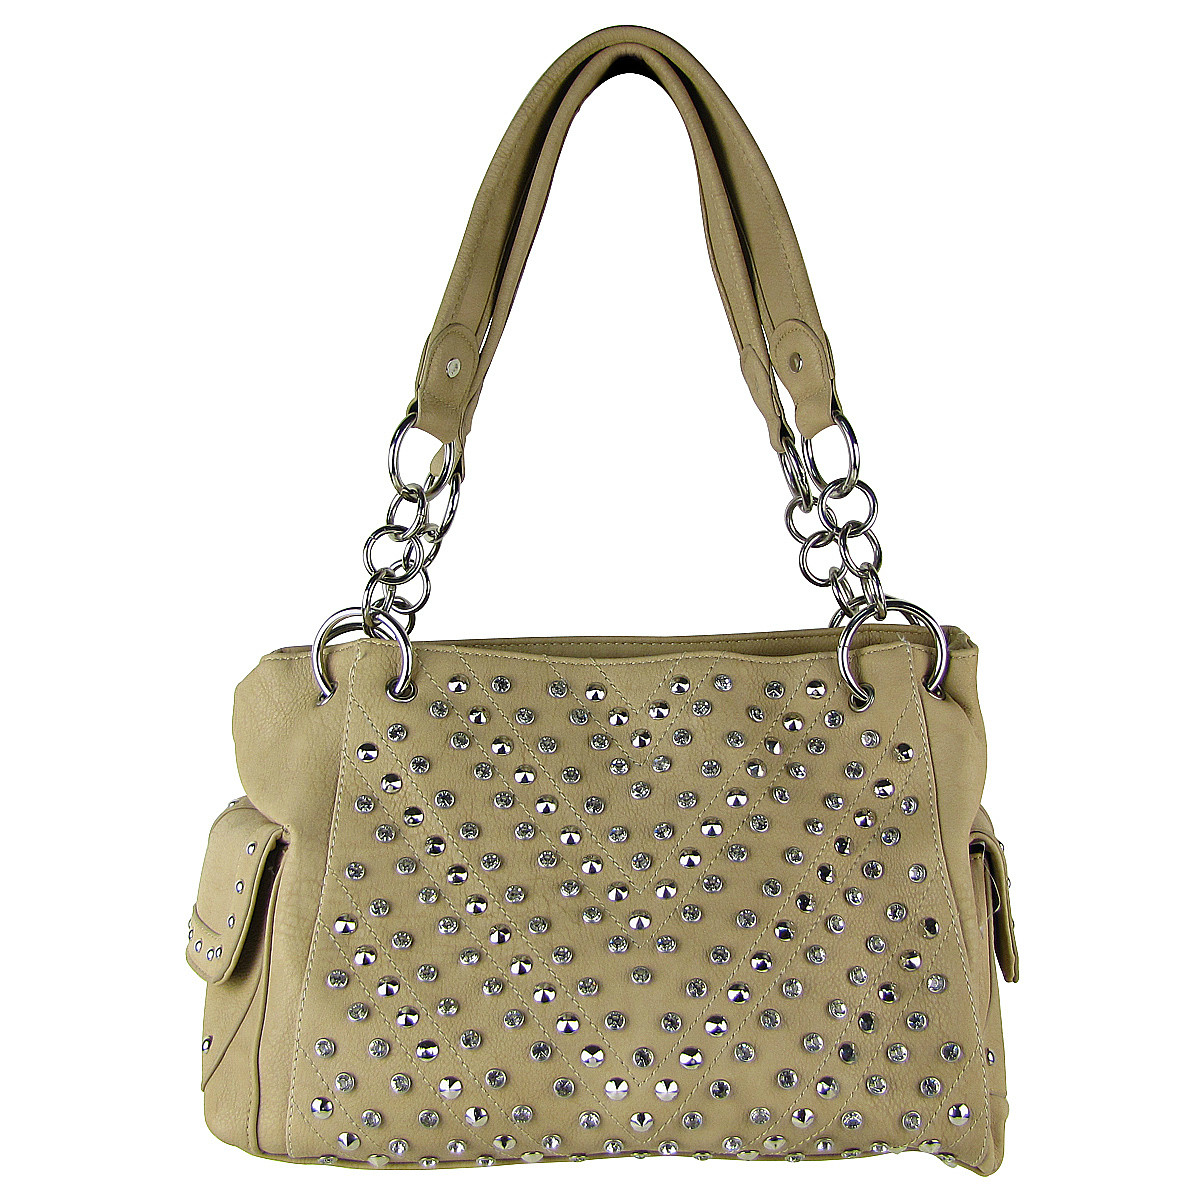 BEIGE RHINESTONE STUDDED LEATHERETTE LOOK SHOULDER HANDBAG HB1-12480BEI